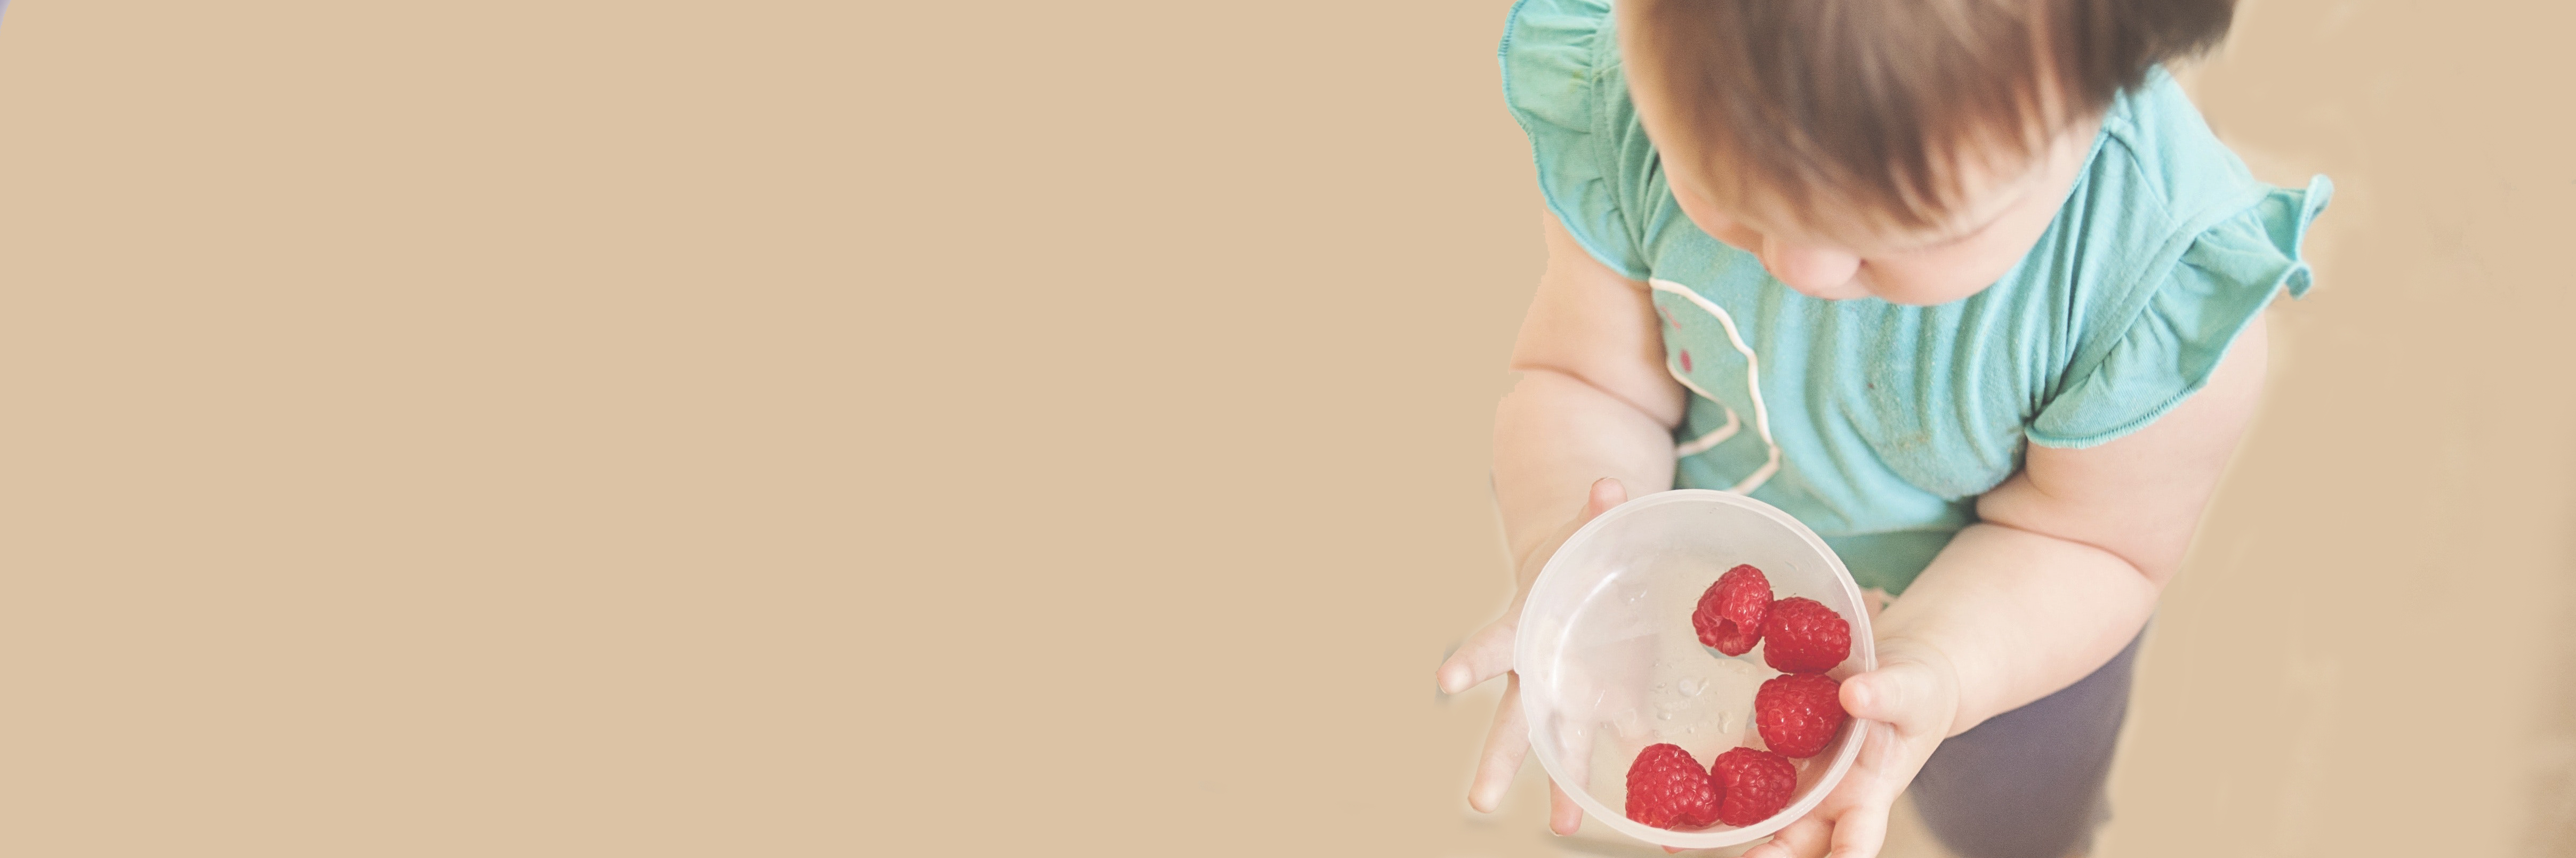 child with bowl of raspberries